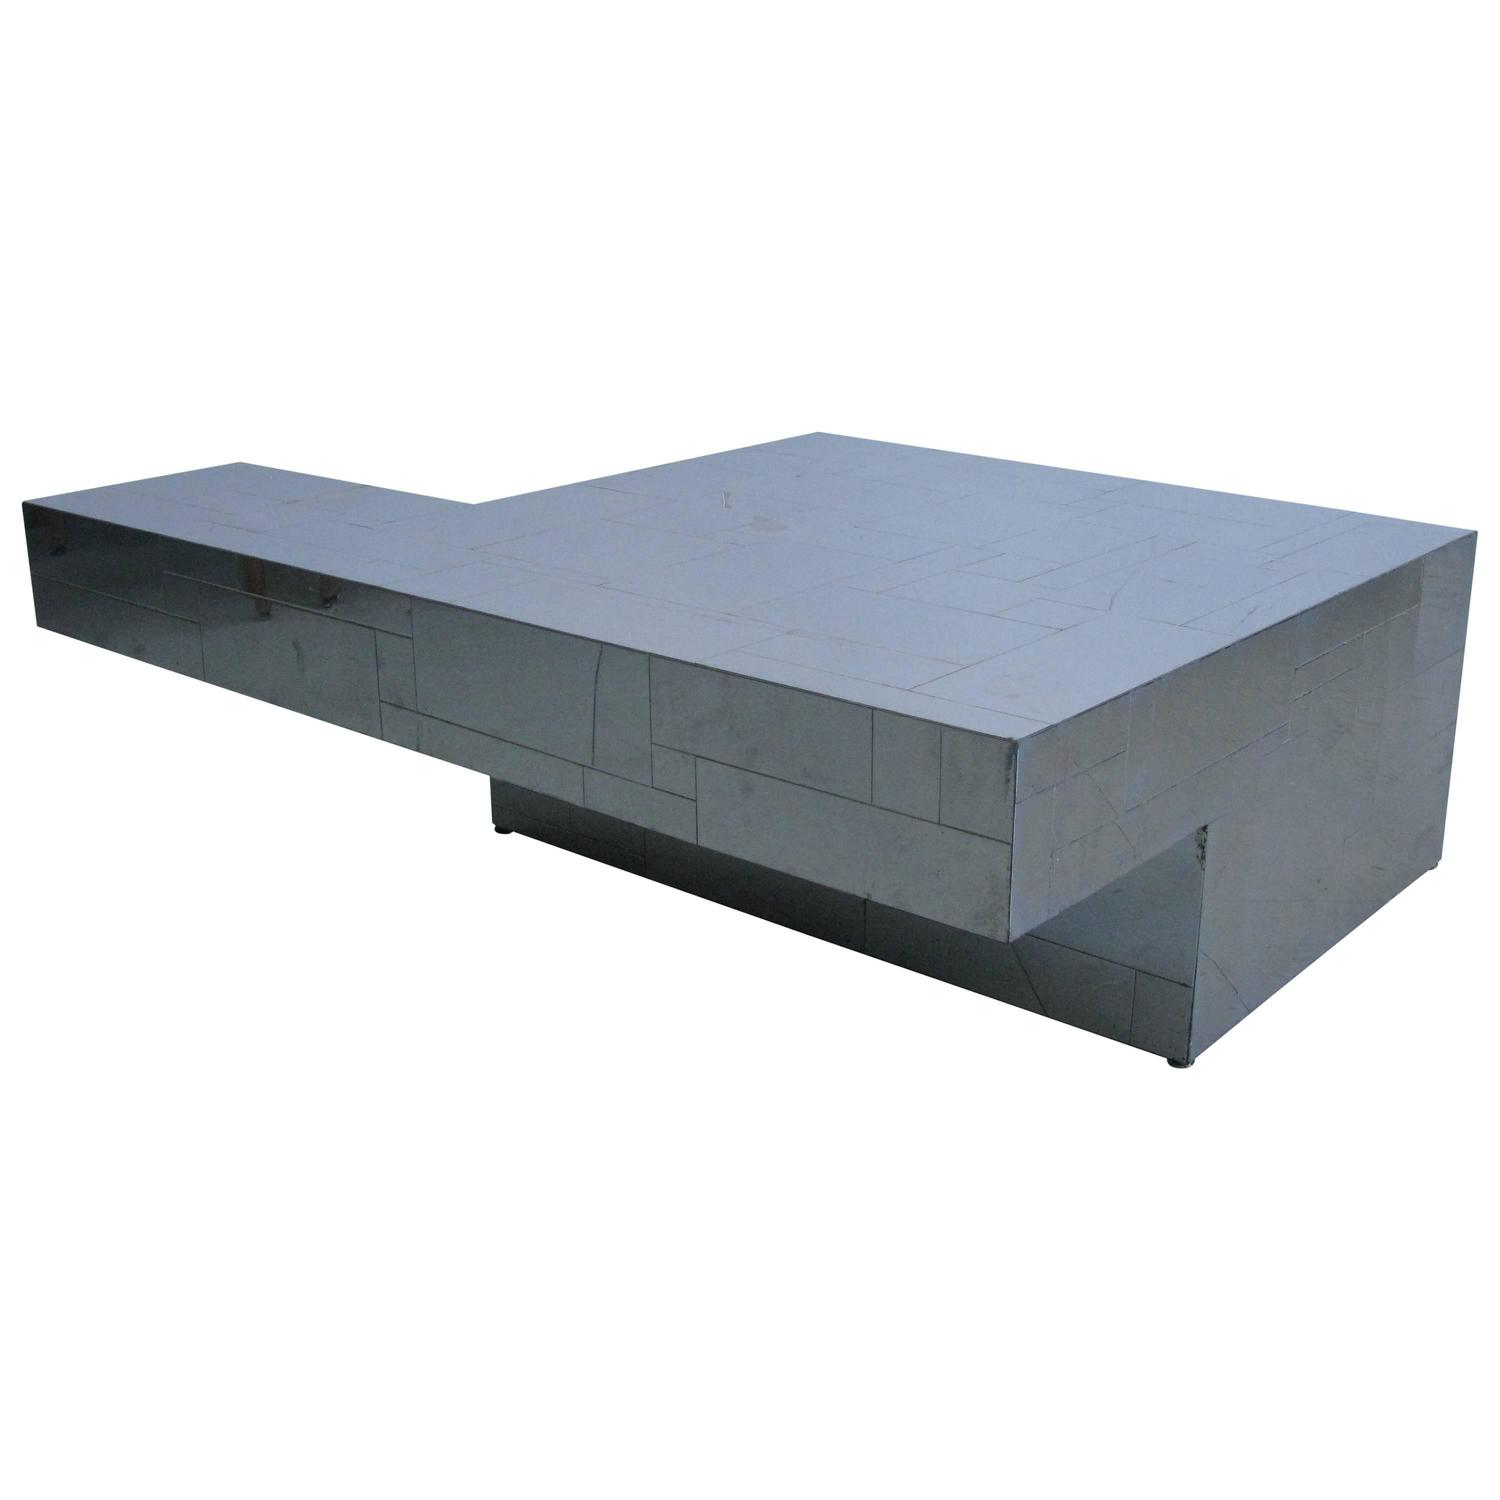 1970s Cantilever Cityscape Coffee Table By Paul Evans At 1stdibs